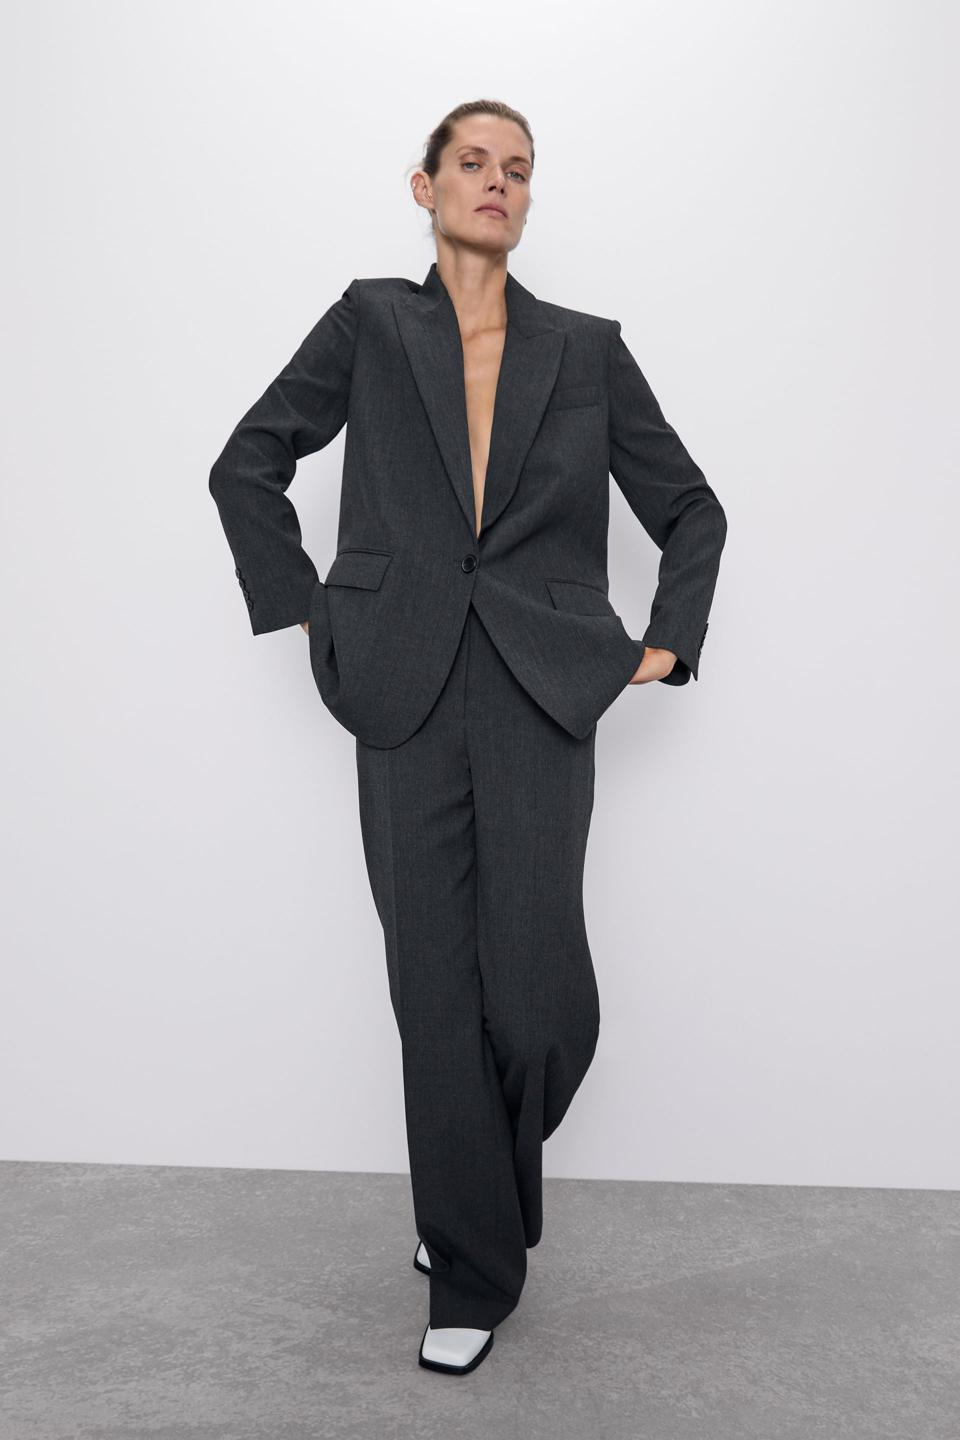 Zara grey suit. Straight cut pleated pants and oversized blazer with pockets.